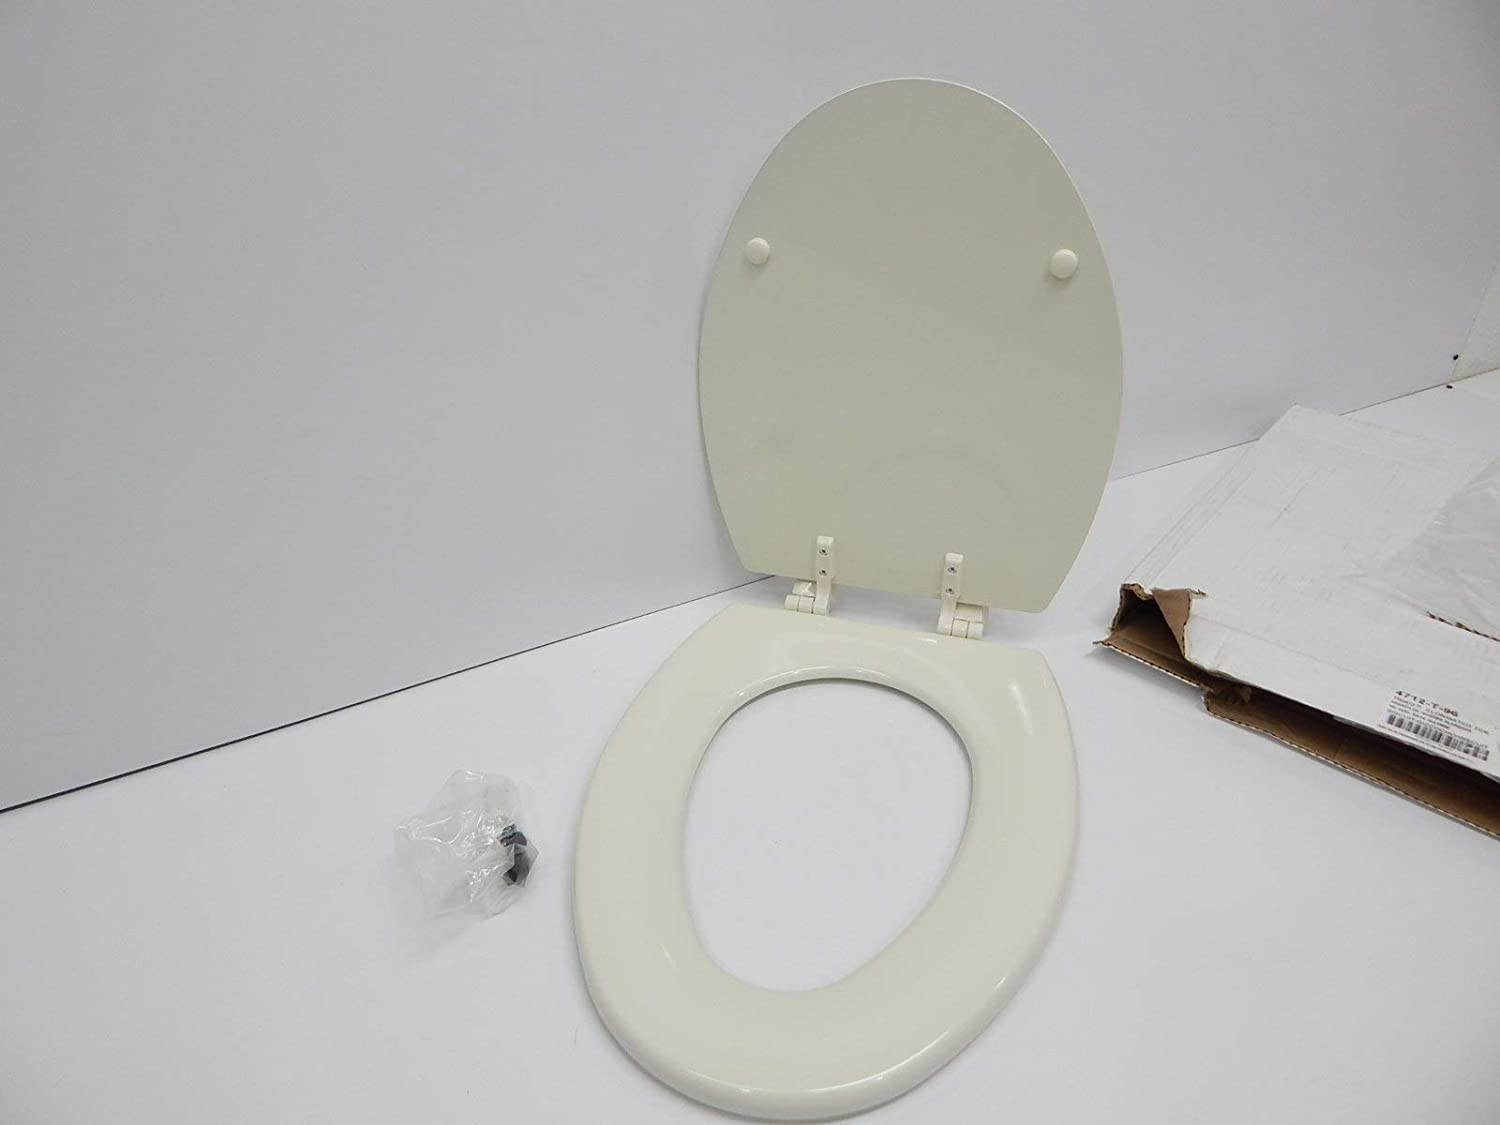 Sensational Kohler K 4712 T 47 Triko Elongated Molded Wood Toilet Seat With Color Matched Hinges Almond Caraccident5 Cool Chair Designs And Ideas Caraccident5Info